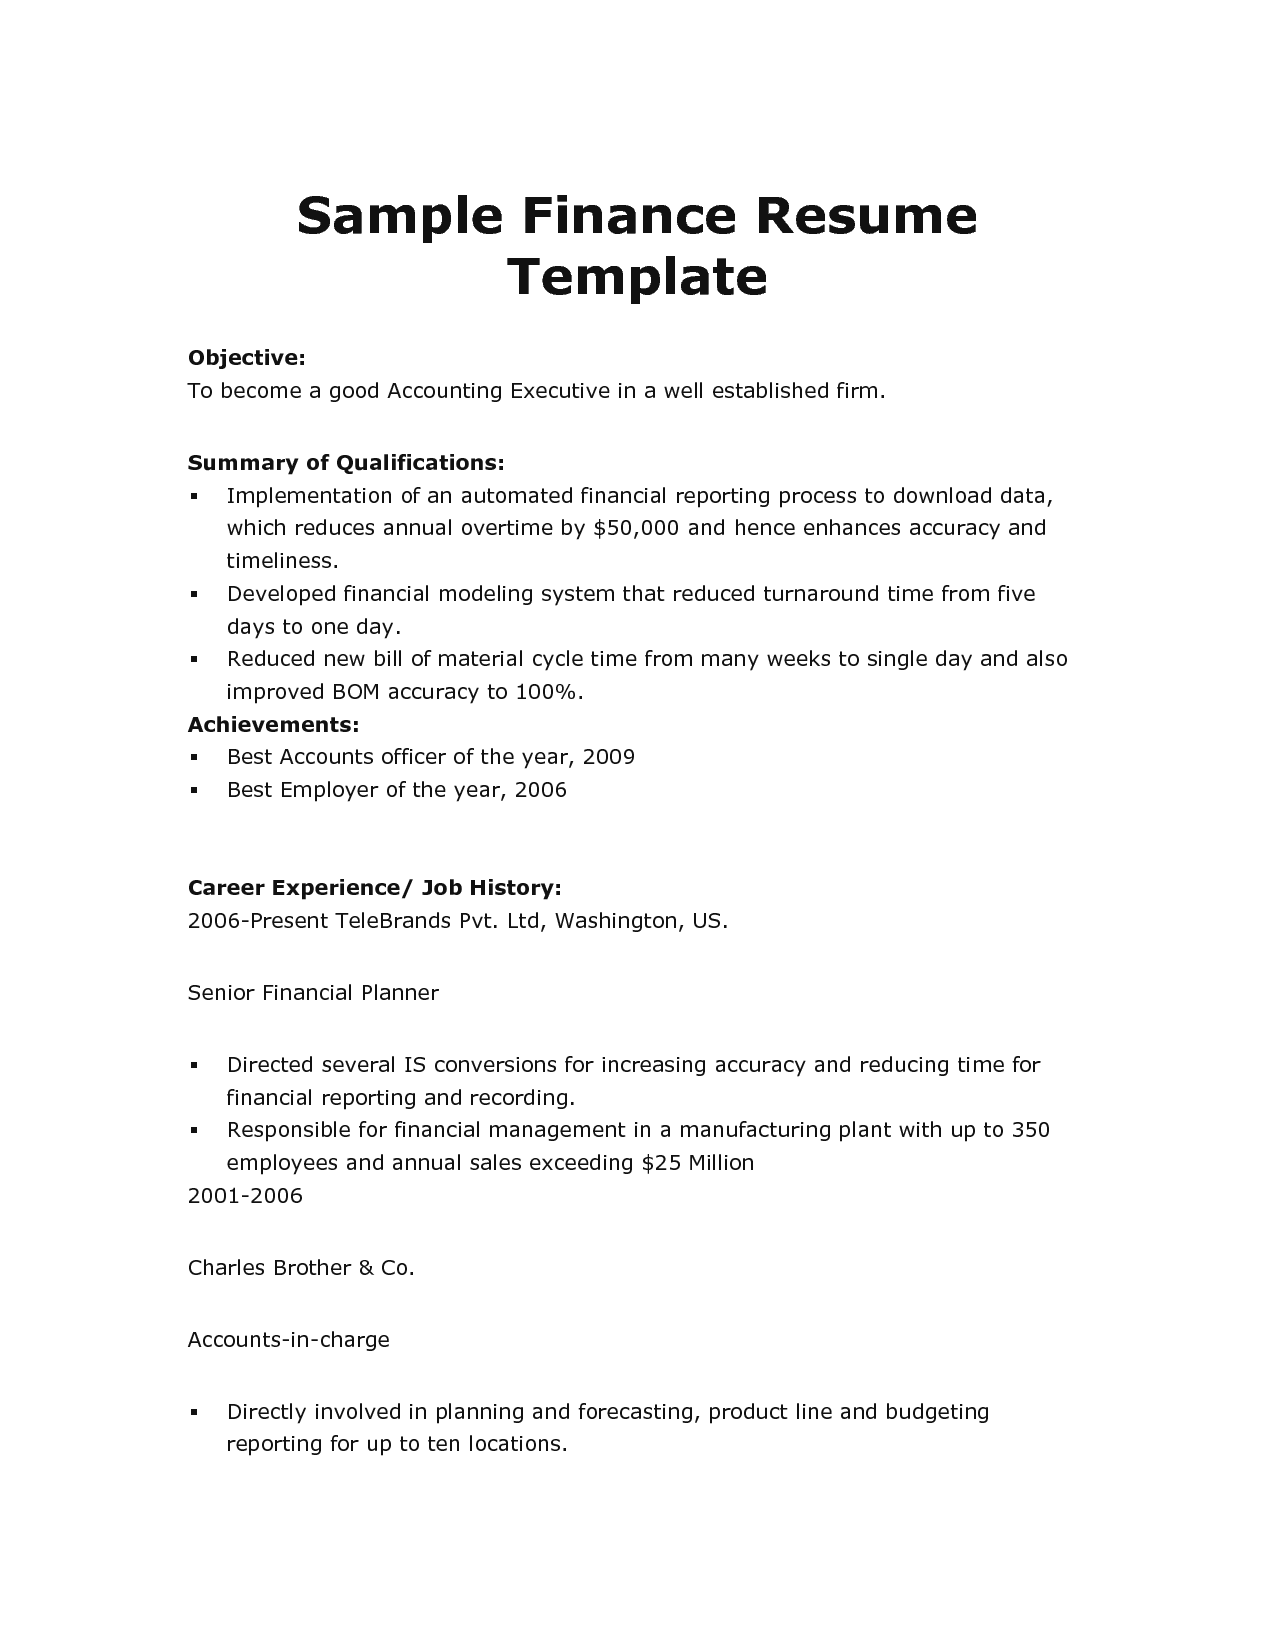 Professional Resume Samples In Word Format Download High Quality Professional Resume Template Samples